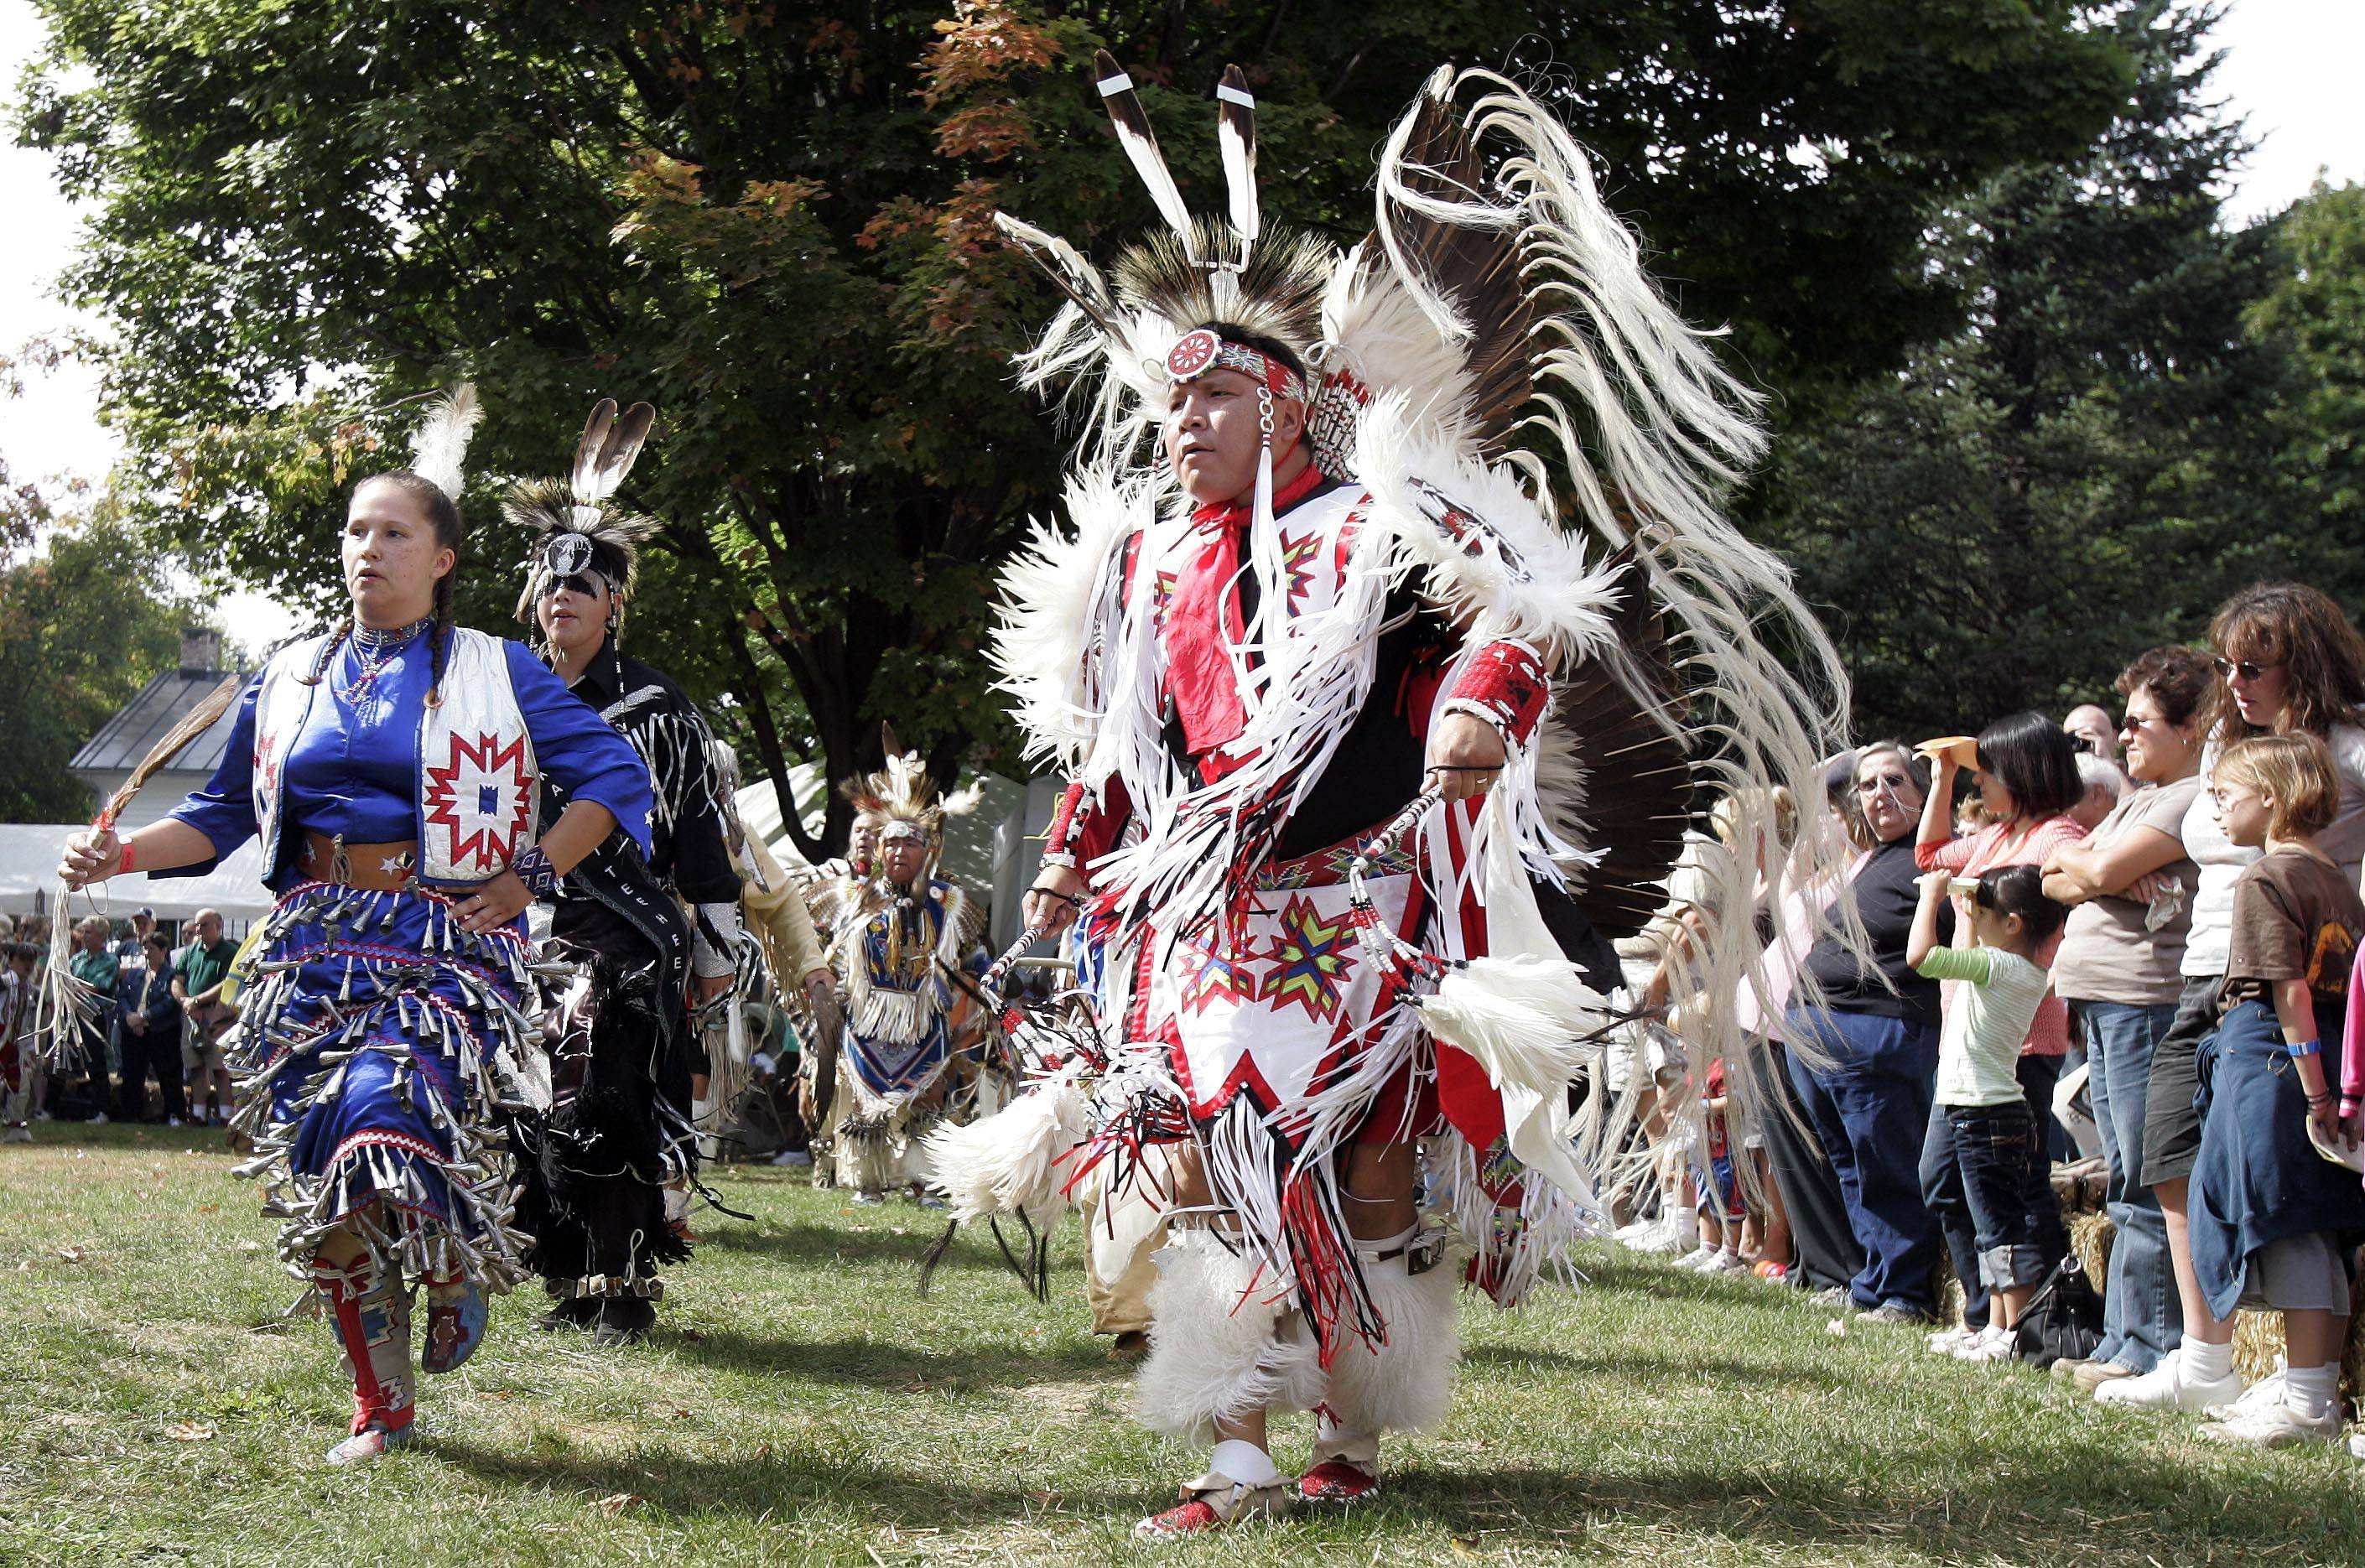 The Midwest SOARRING Foundation is one of many groups seeking funding this spring from Naperville's Special Events and Cultural Amenities Fund. The group wants $40,000 for its annual Harvest Pow Wow.